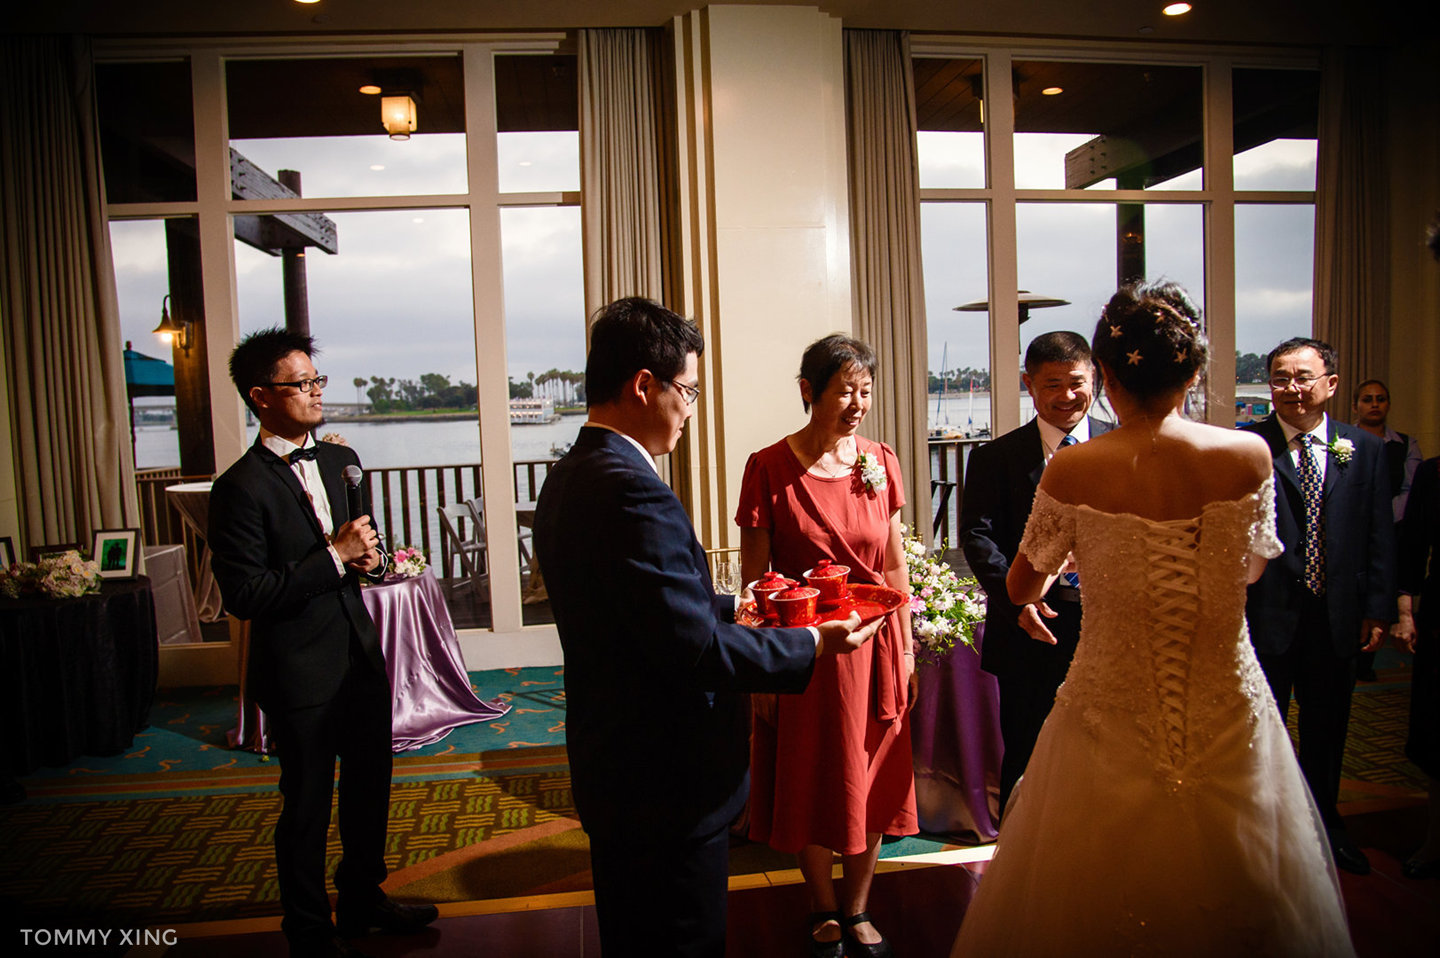 Paradise Point Resort Wedding Xiaolu & Bin San Diego 圣地亚哥婚礼摄影跟拍 Tommy Xing Photography 洛杉矶婚礼婚纱照摄影师 255.jpg